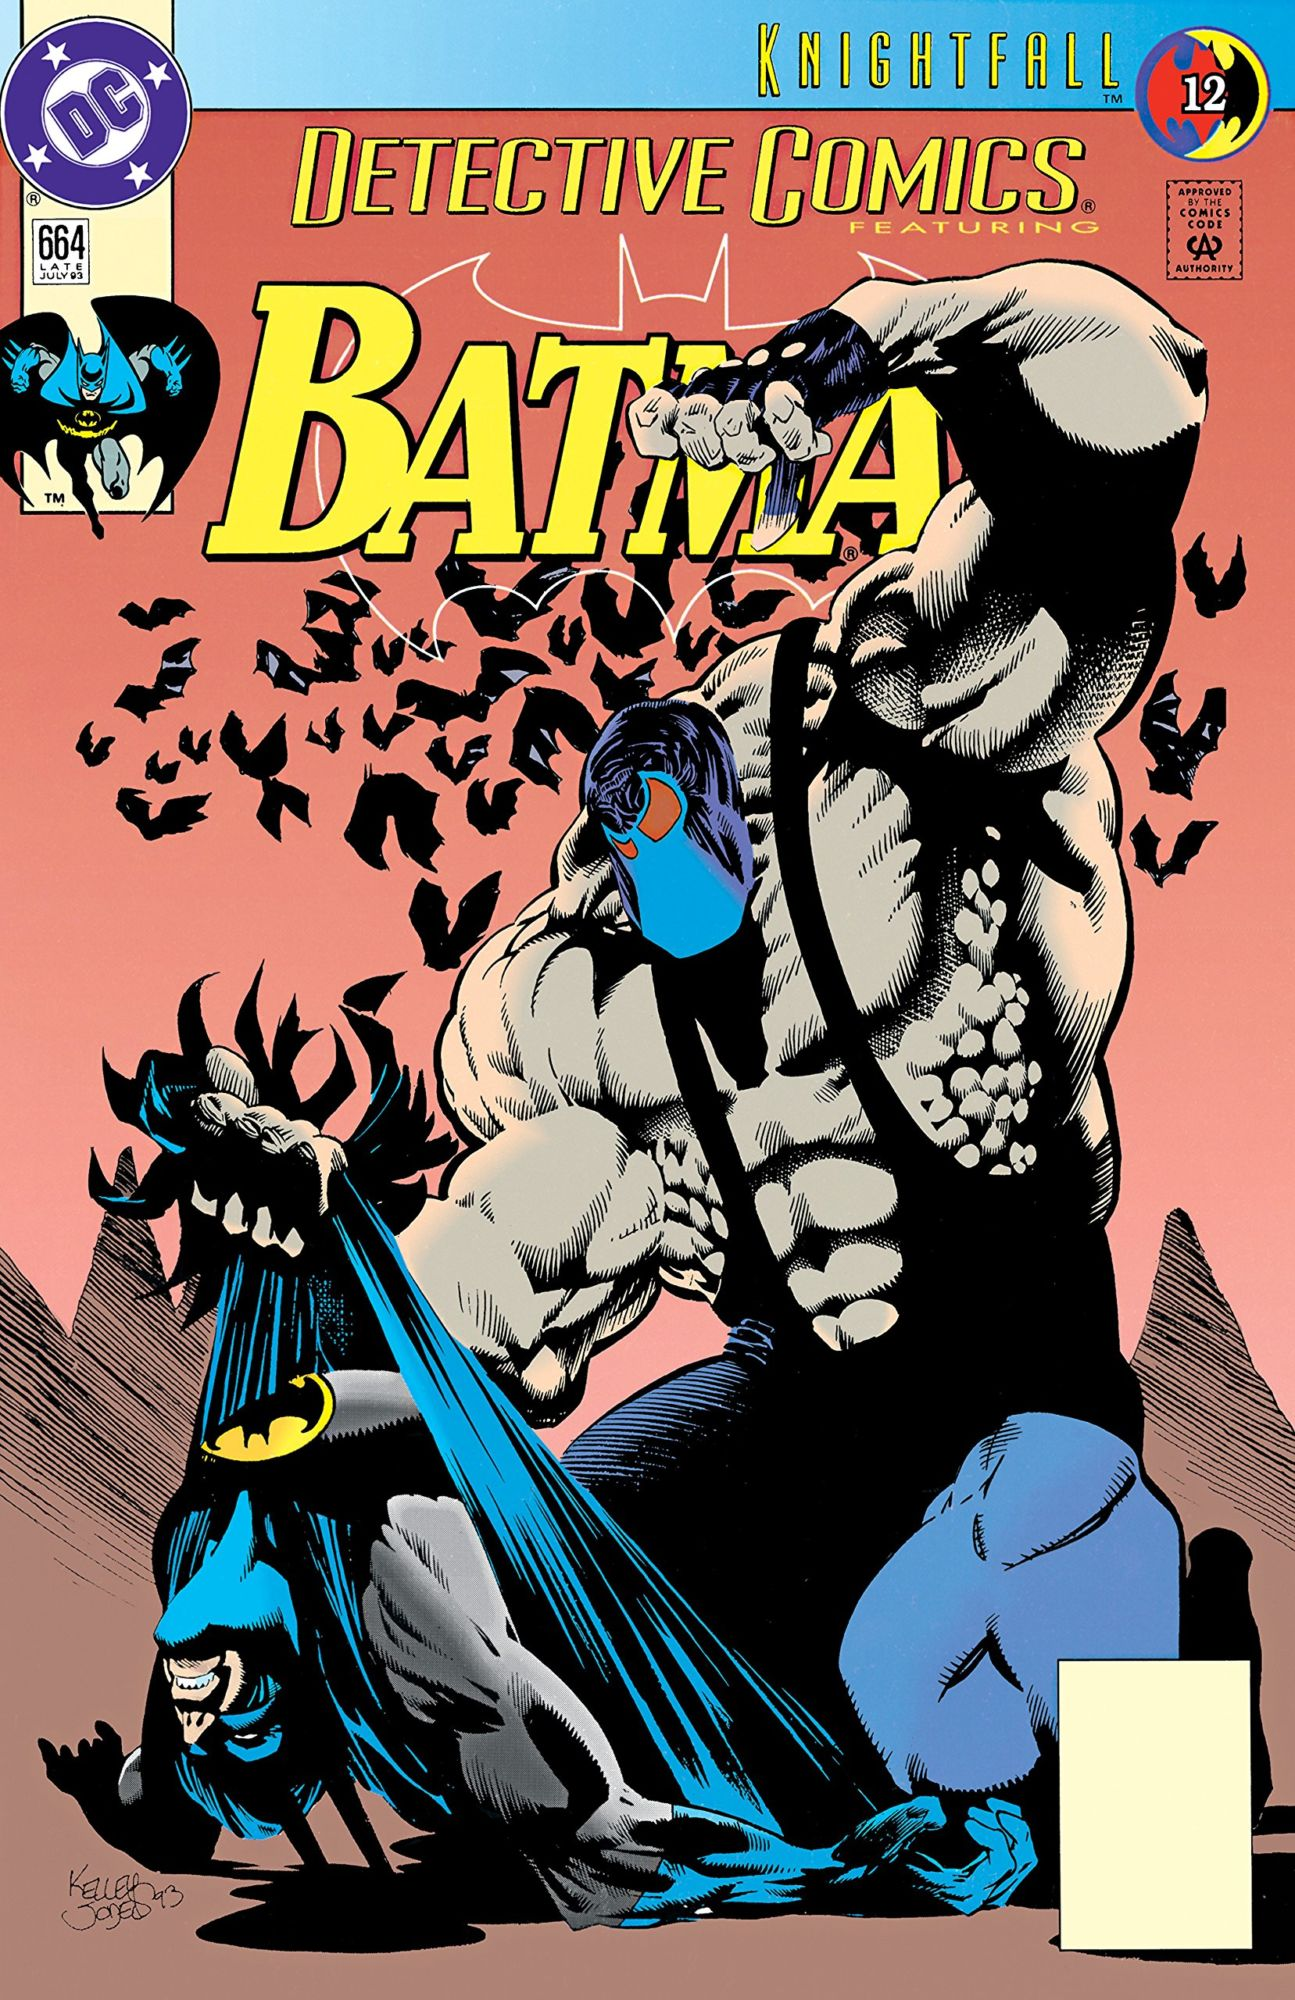 DC Comics to Reprint and Recut Chuck Dixon's Batman